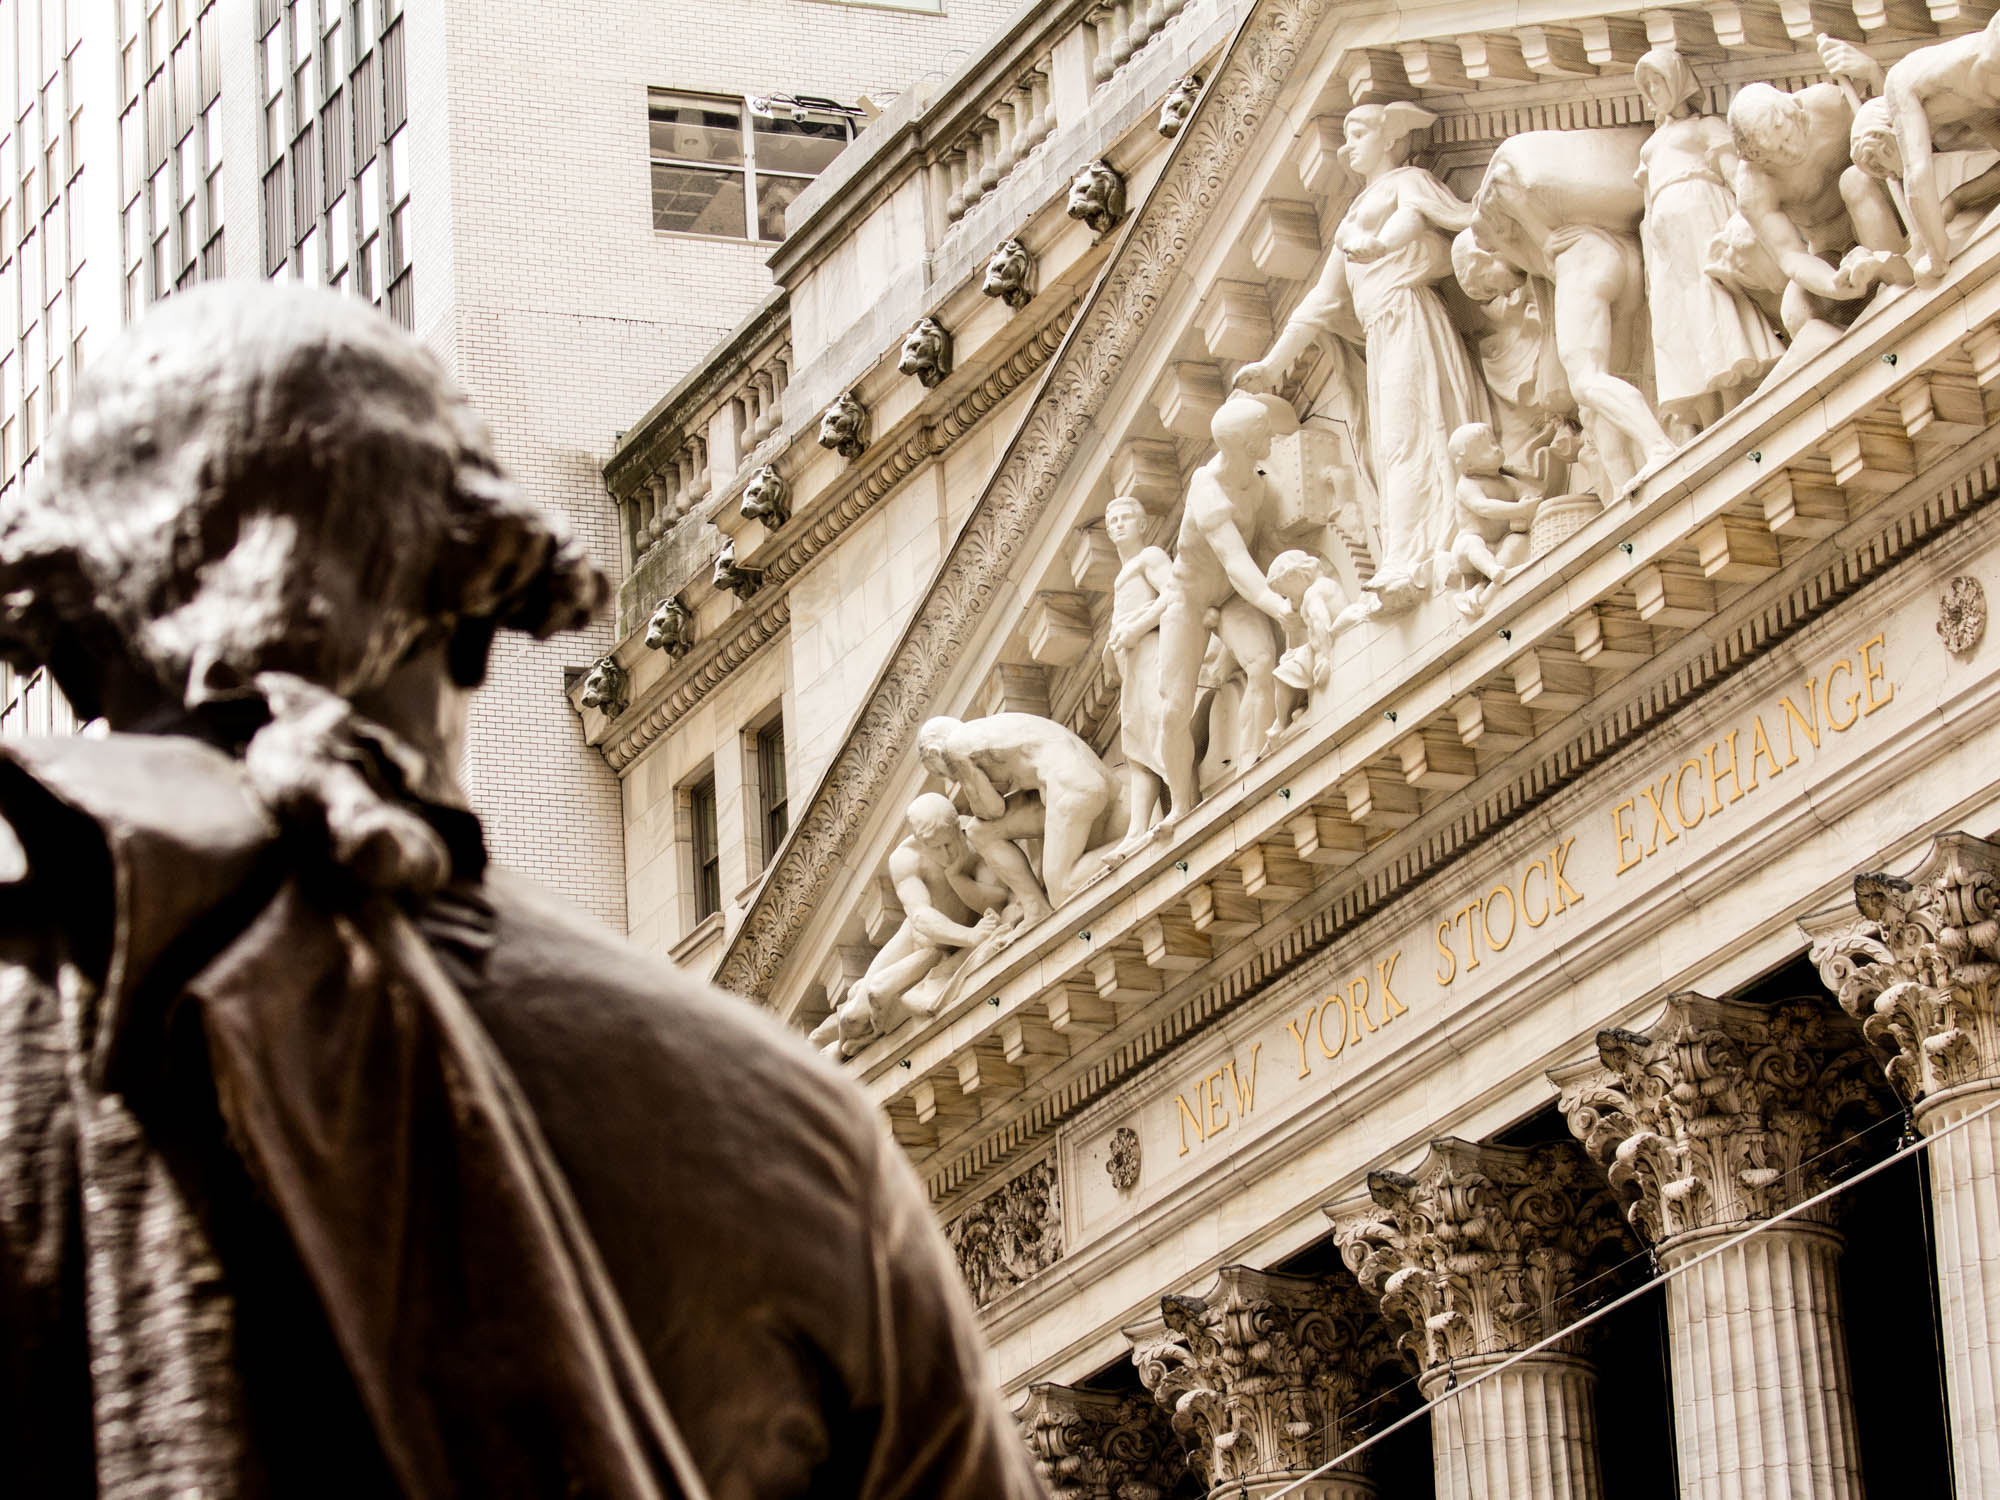 George Washington Statue and NYSE